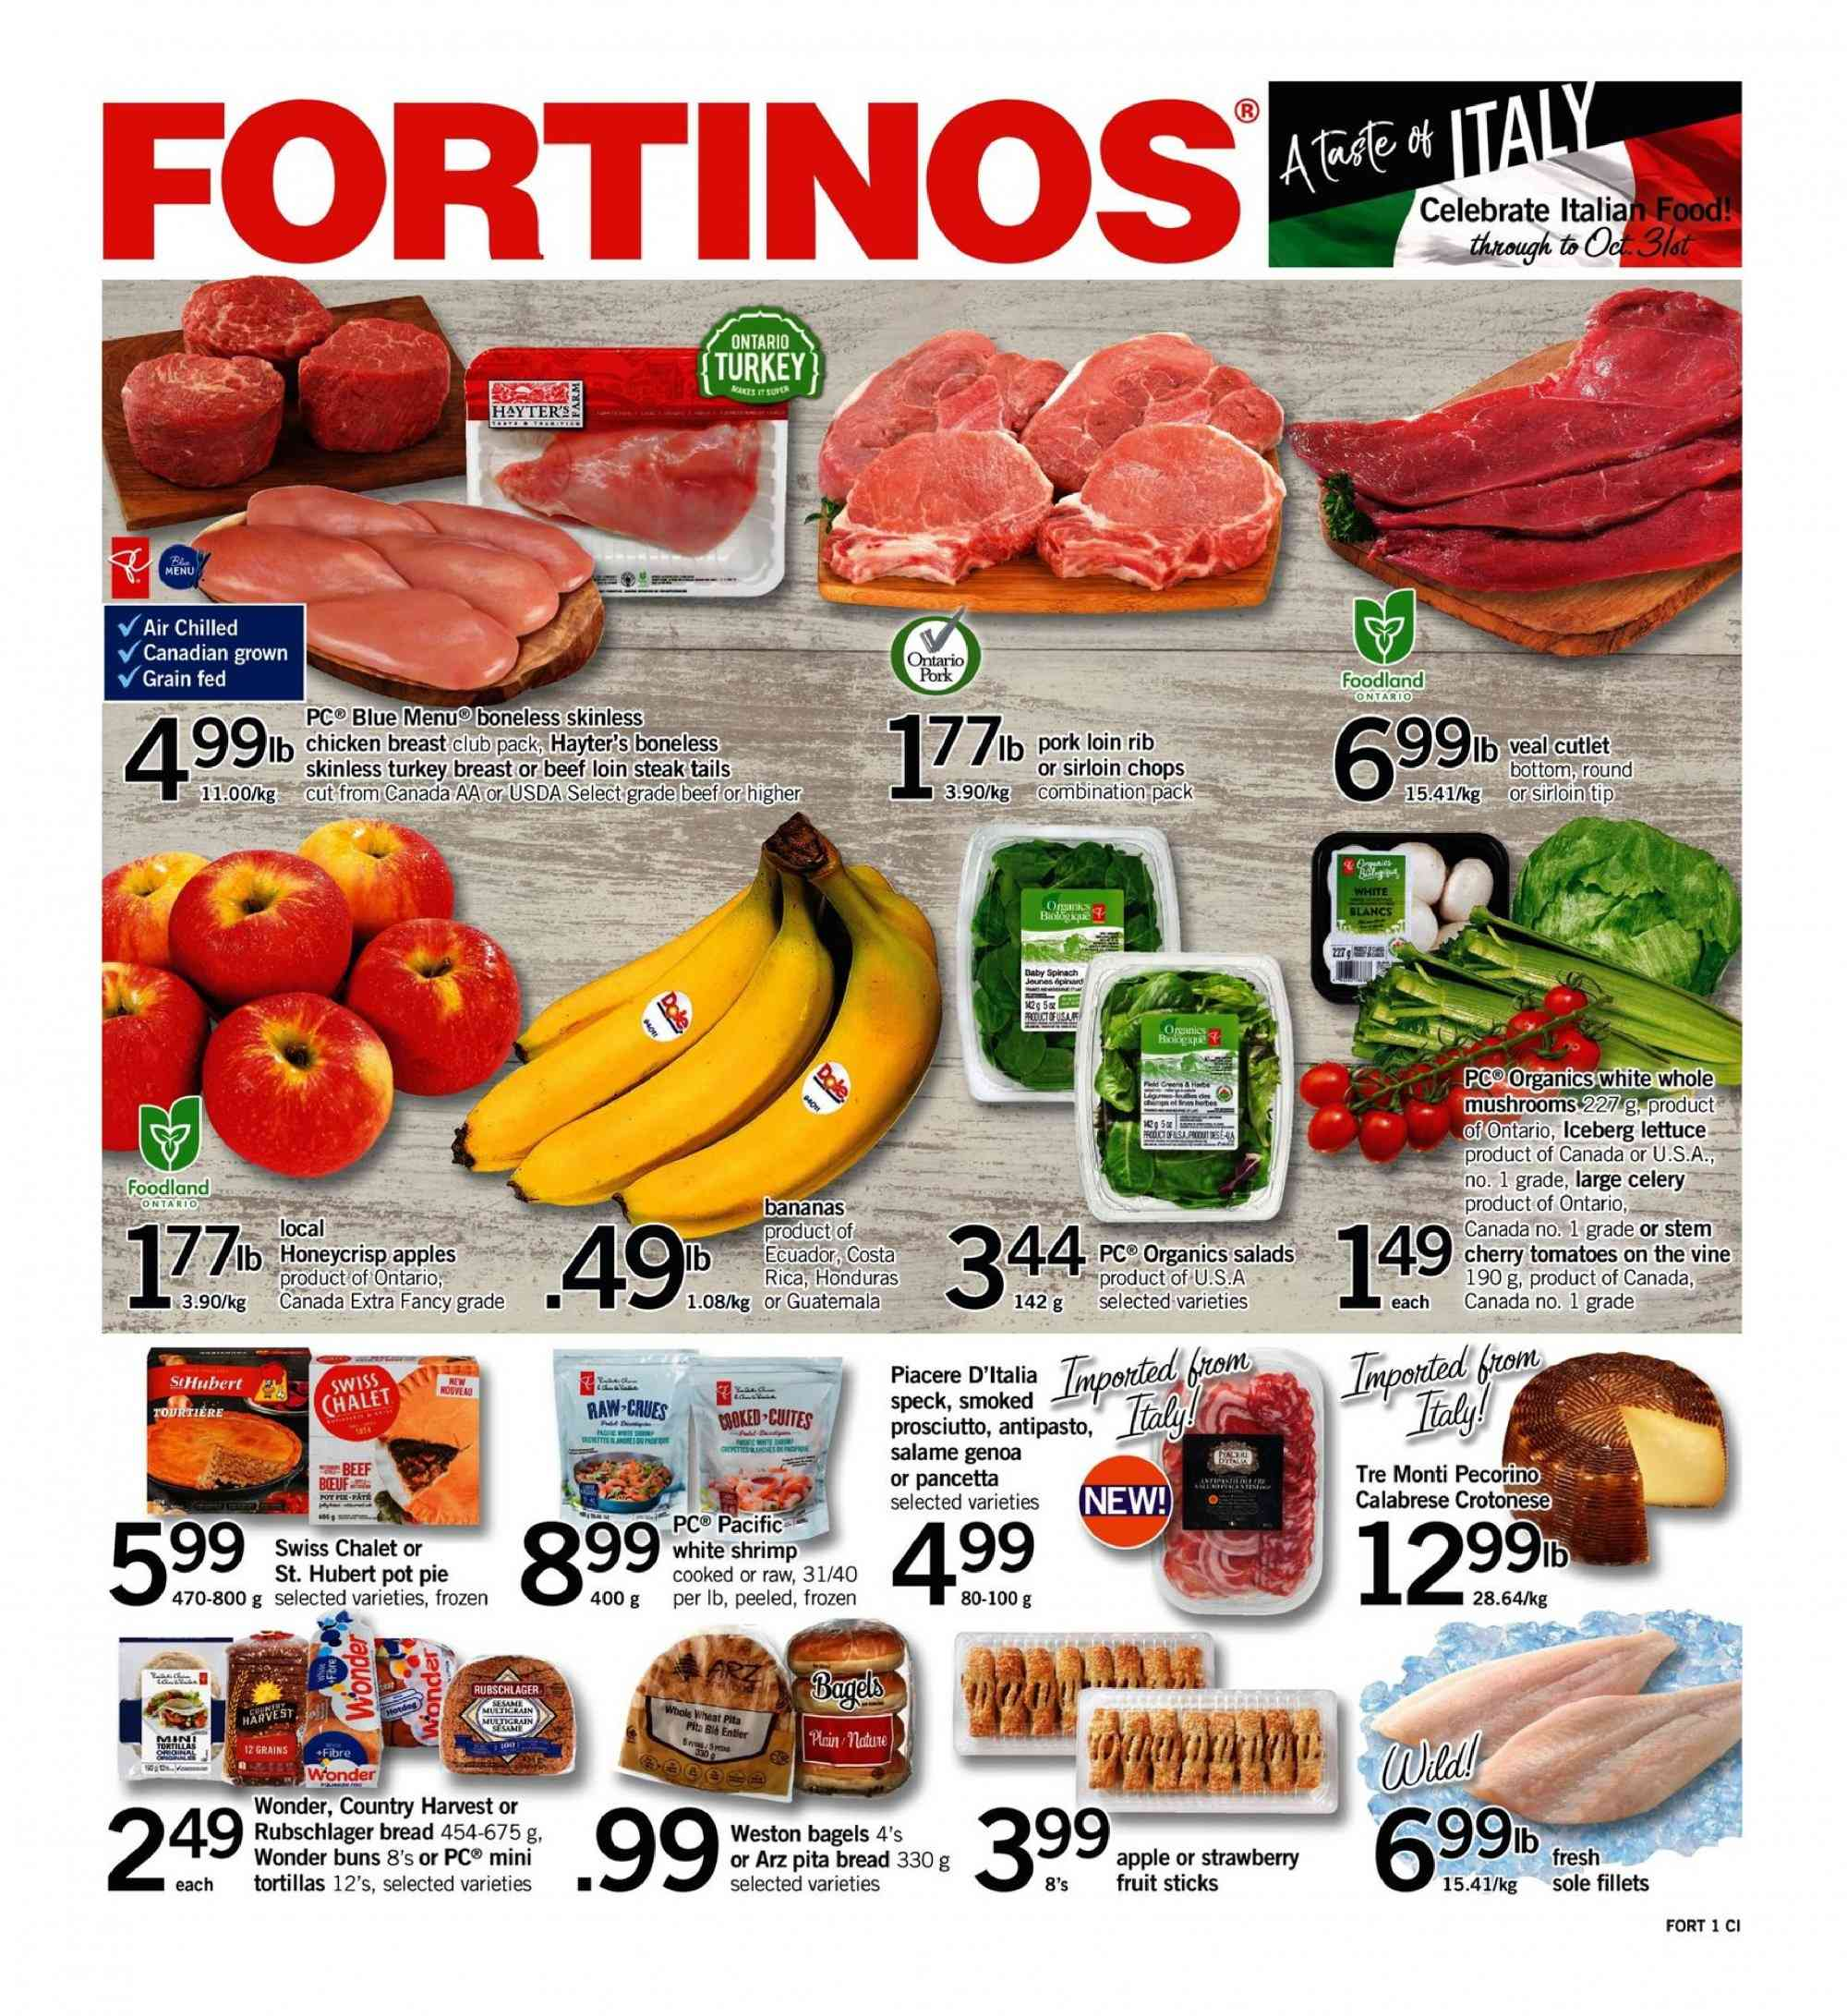 Fortinos Flyer  - October 11, 2018 - October 17, 2018. Page 1.